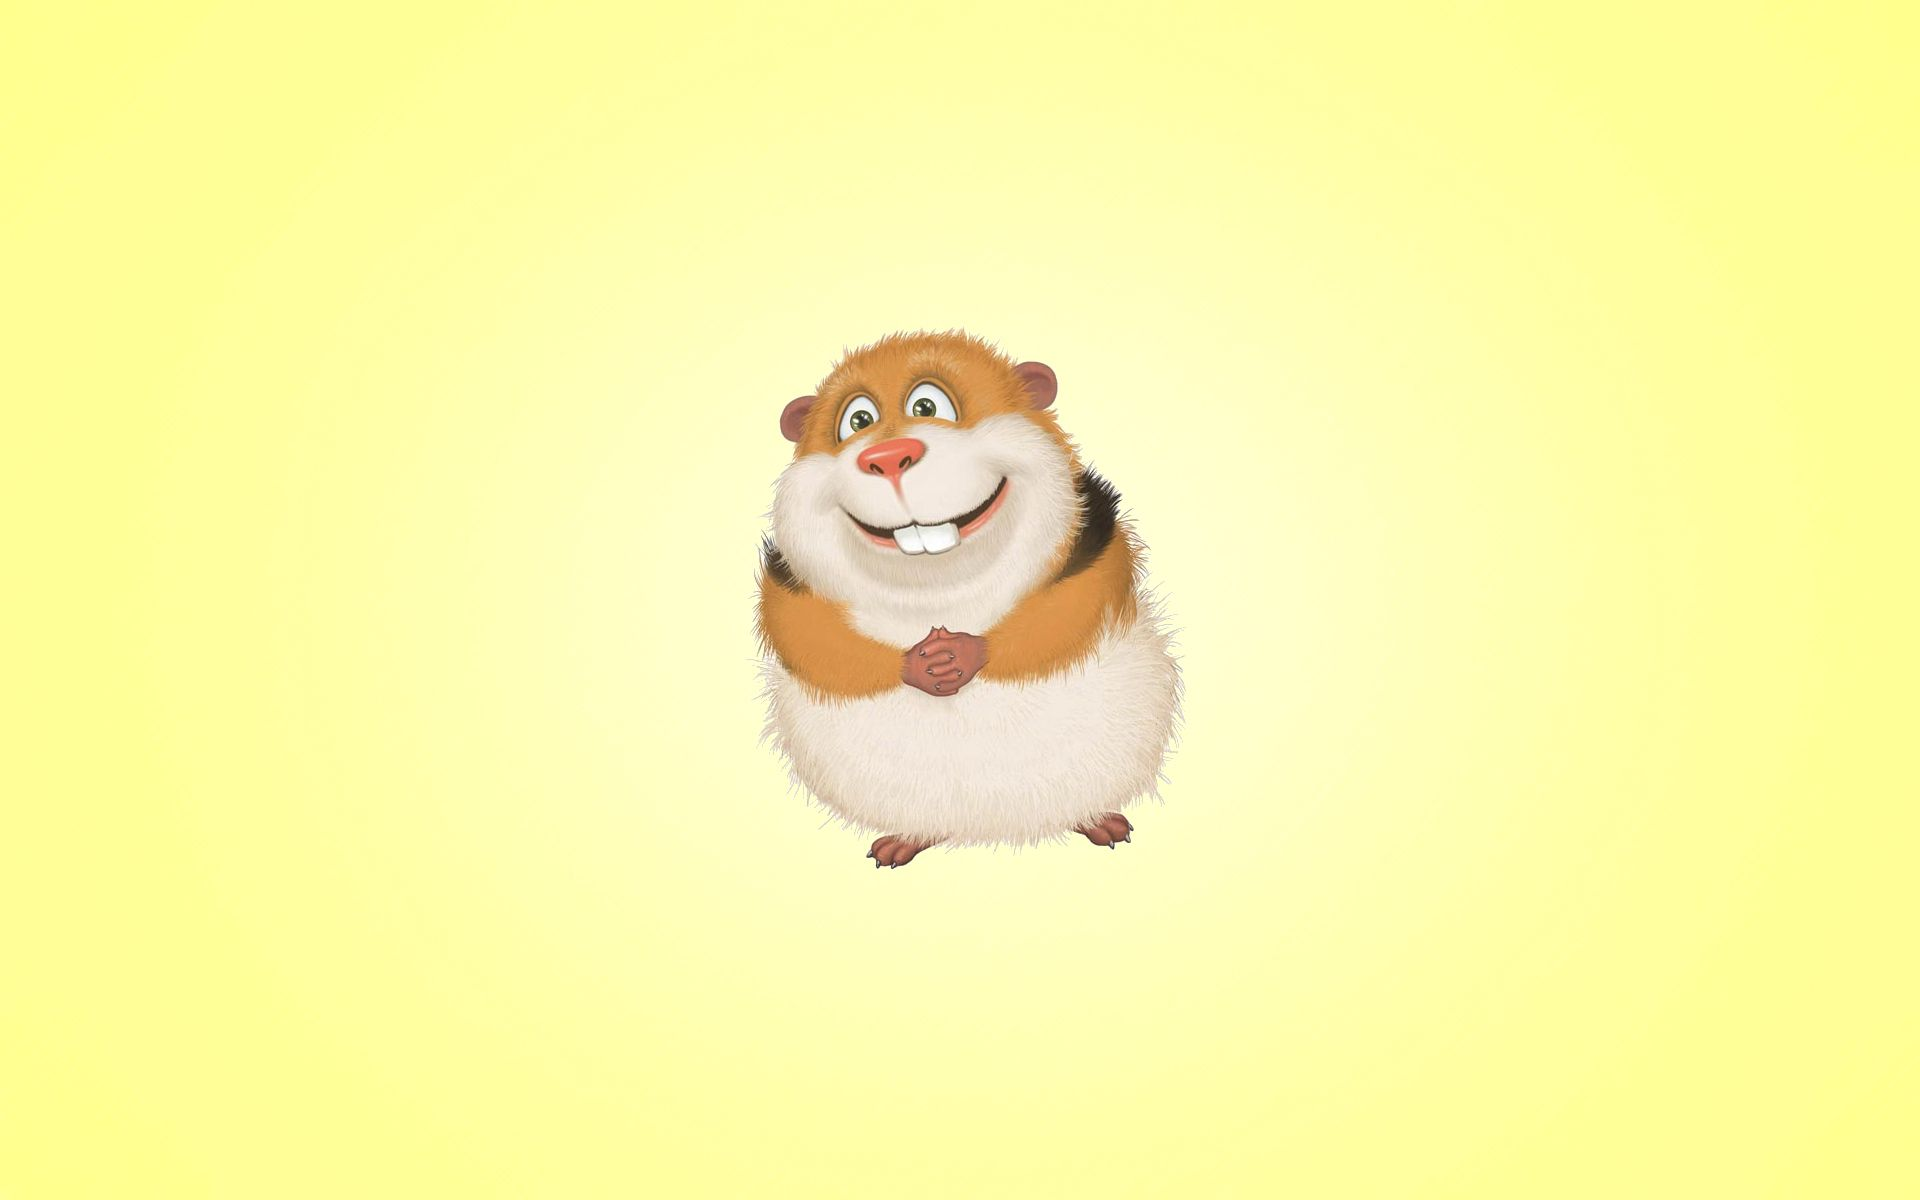 146983 download wallpaper Vector, Guinea Pig, Hamster, Rodent, Art, Happy, Cheery screensavers and pictures for free